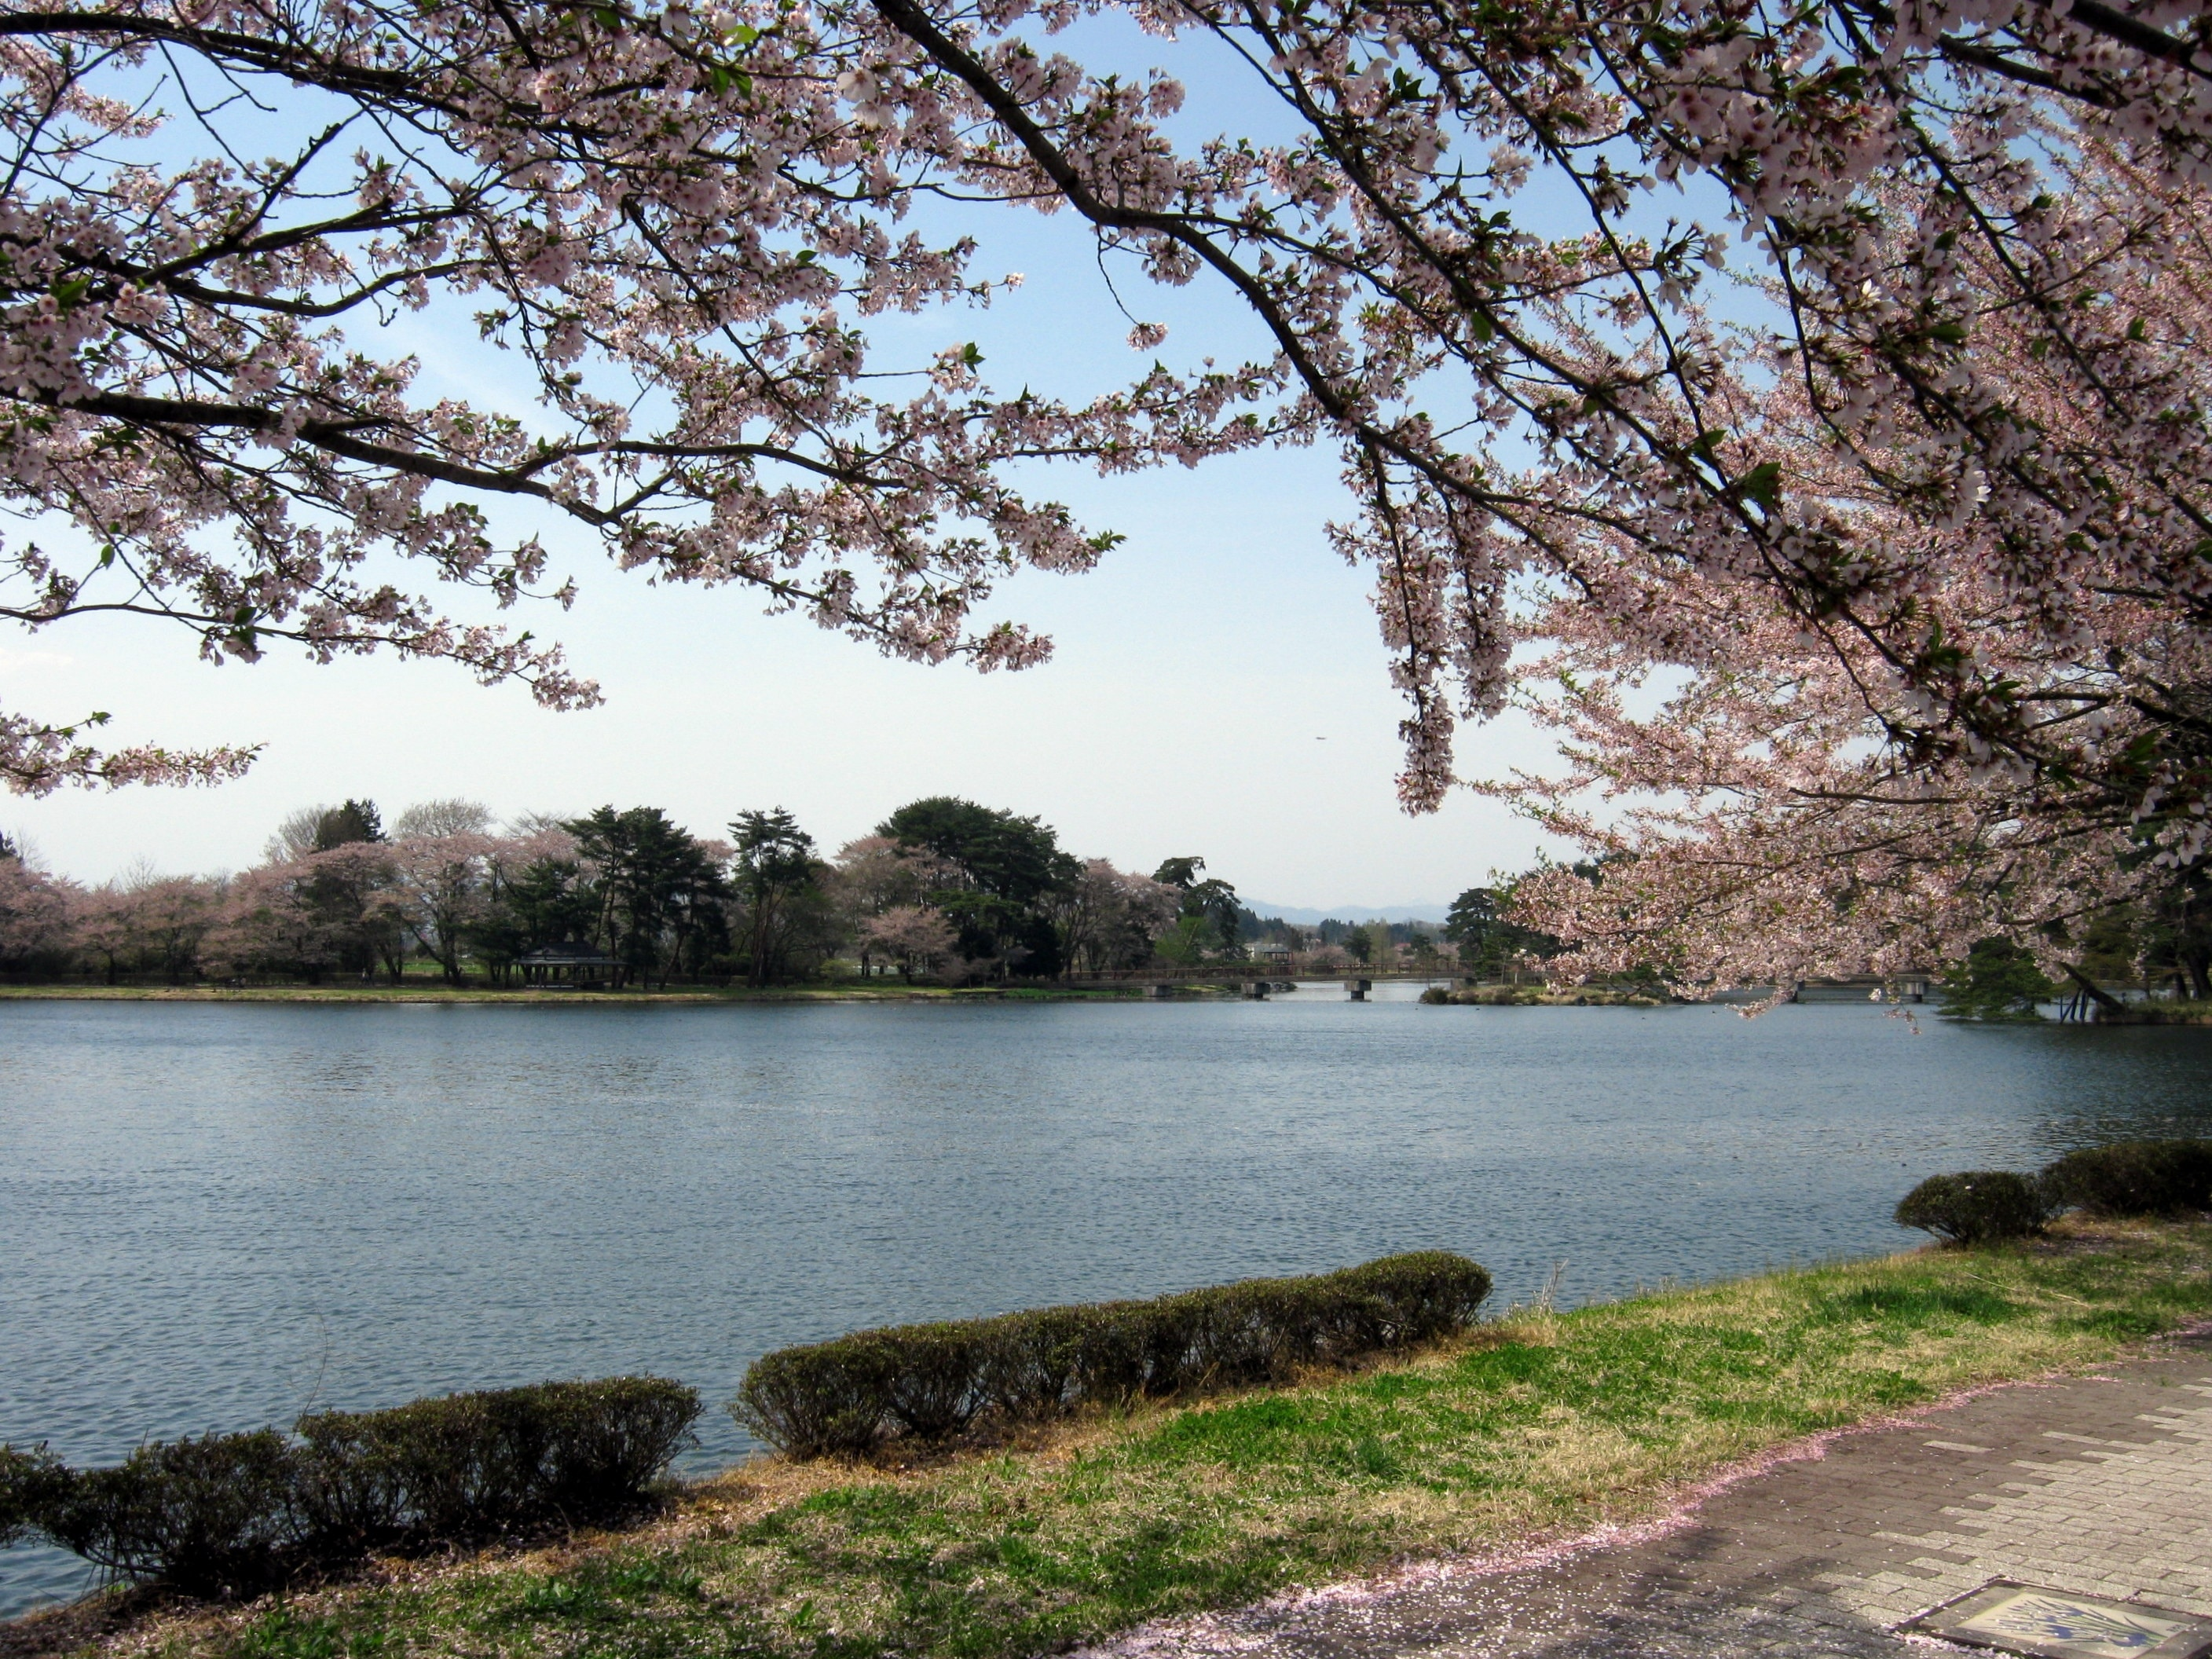 "Photo ""大池公園(矢吹町)"" by Duff Figgy (Creative Commons Attribution-Share Alike 3.0) / Cropped from original"